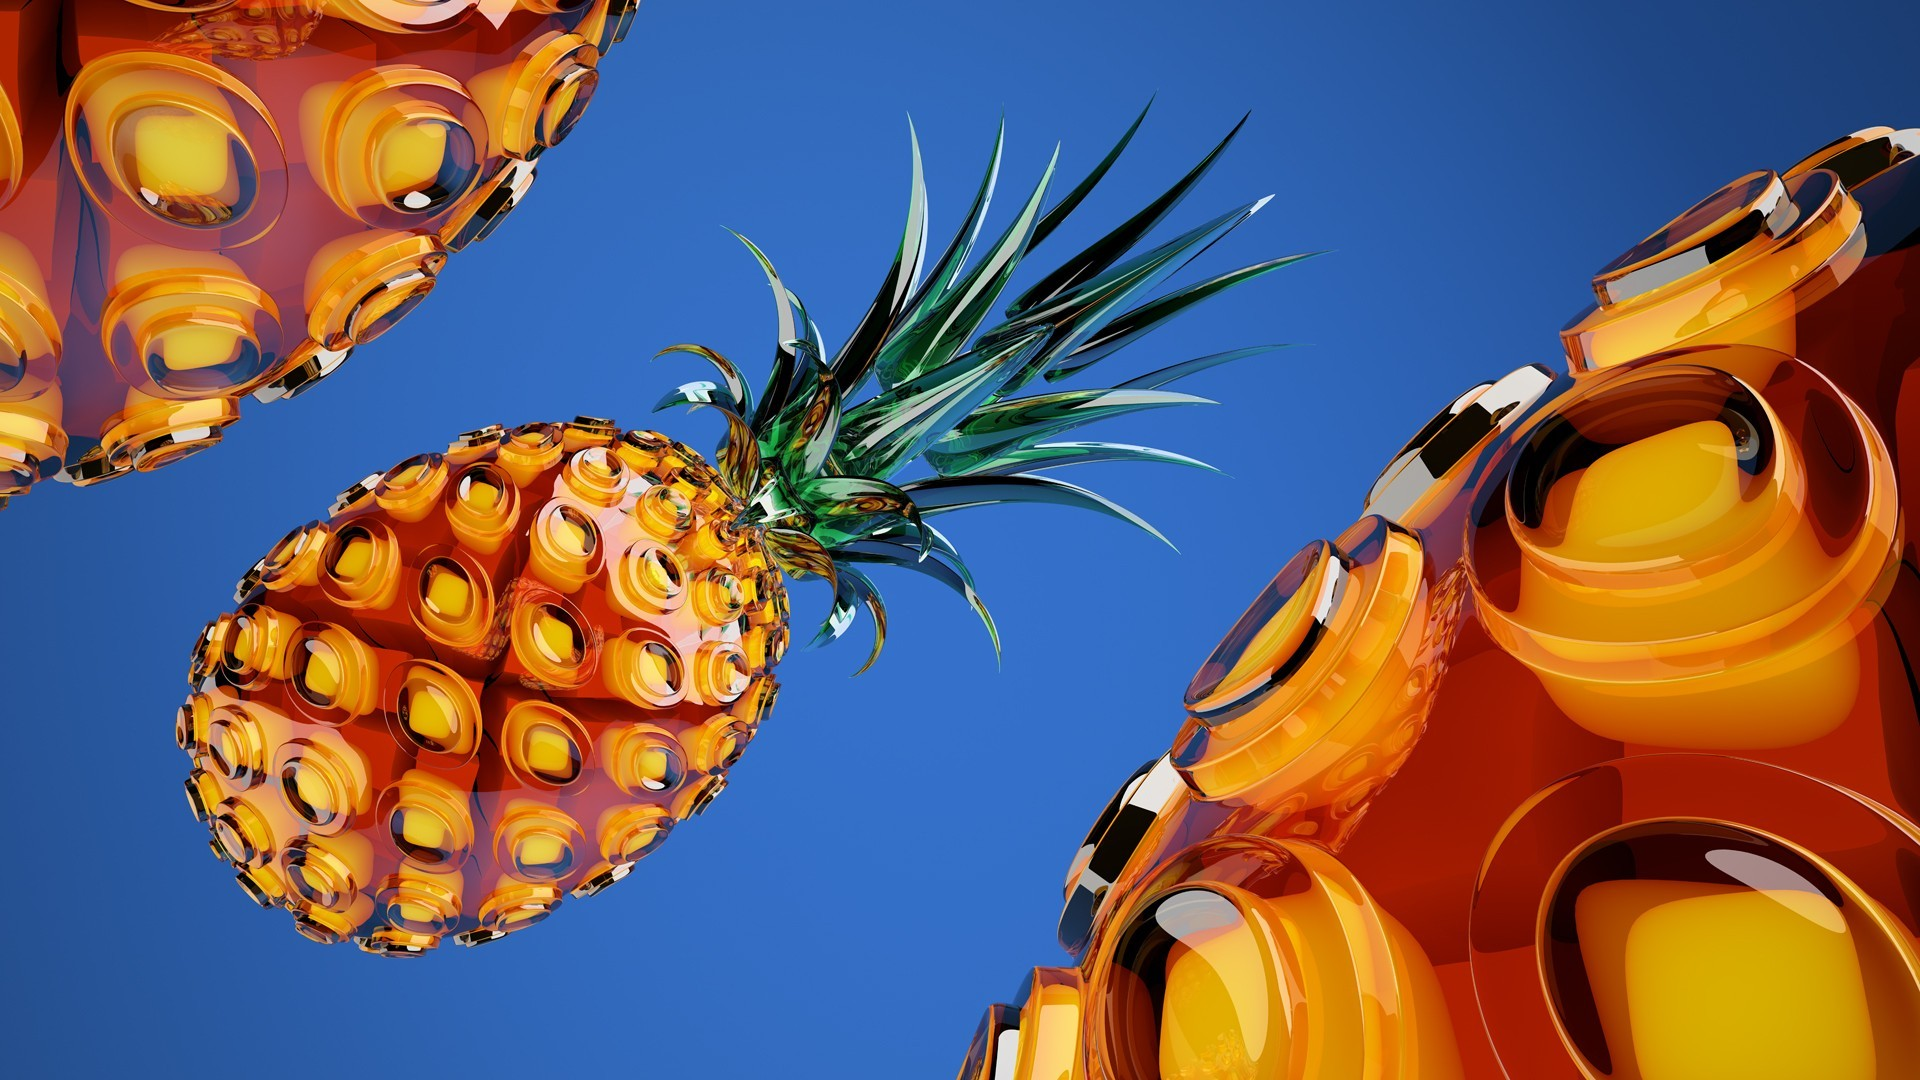 1920x1080 Stunning Pineapple HD Wallpaper Free Download